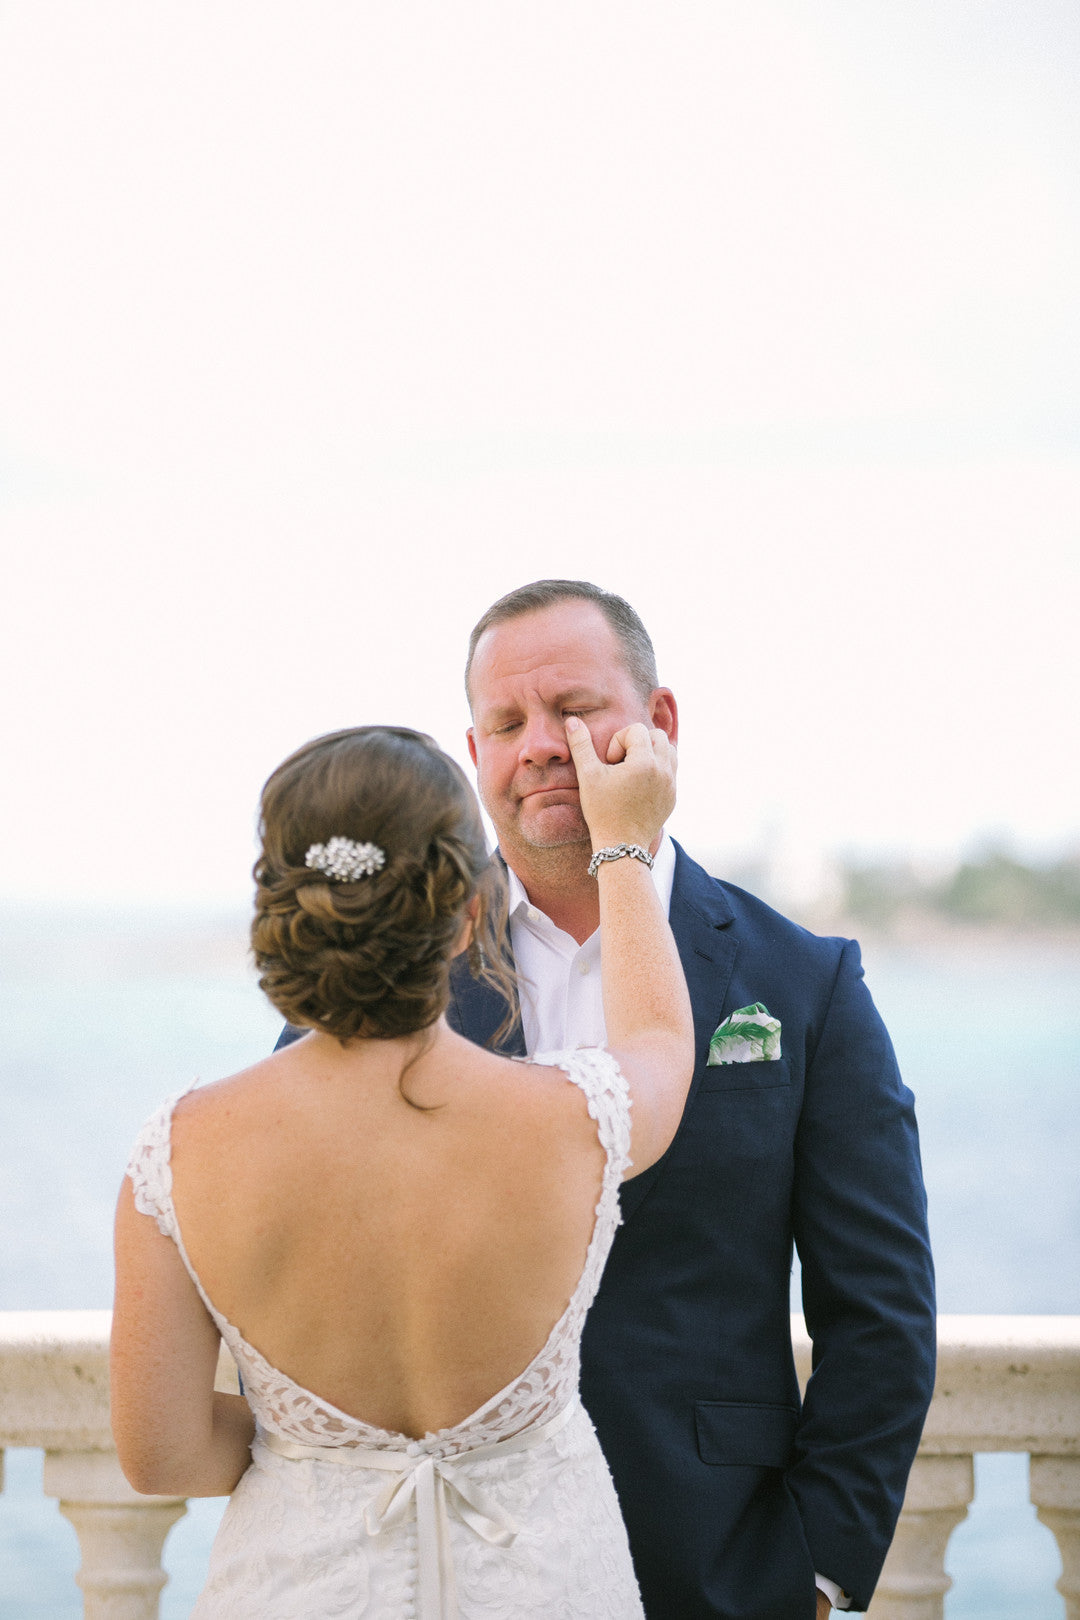 Bride and Groom | A Dreamy Destination Wedding at St. Thomas | Kate Aspen